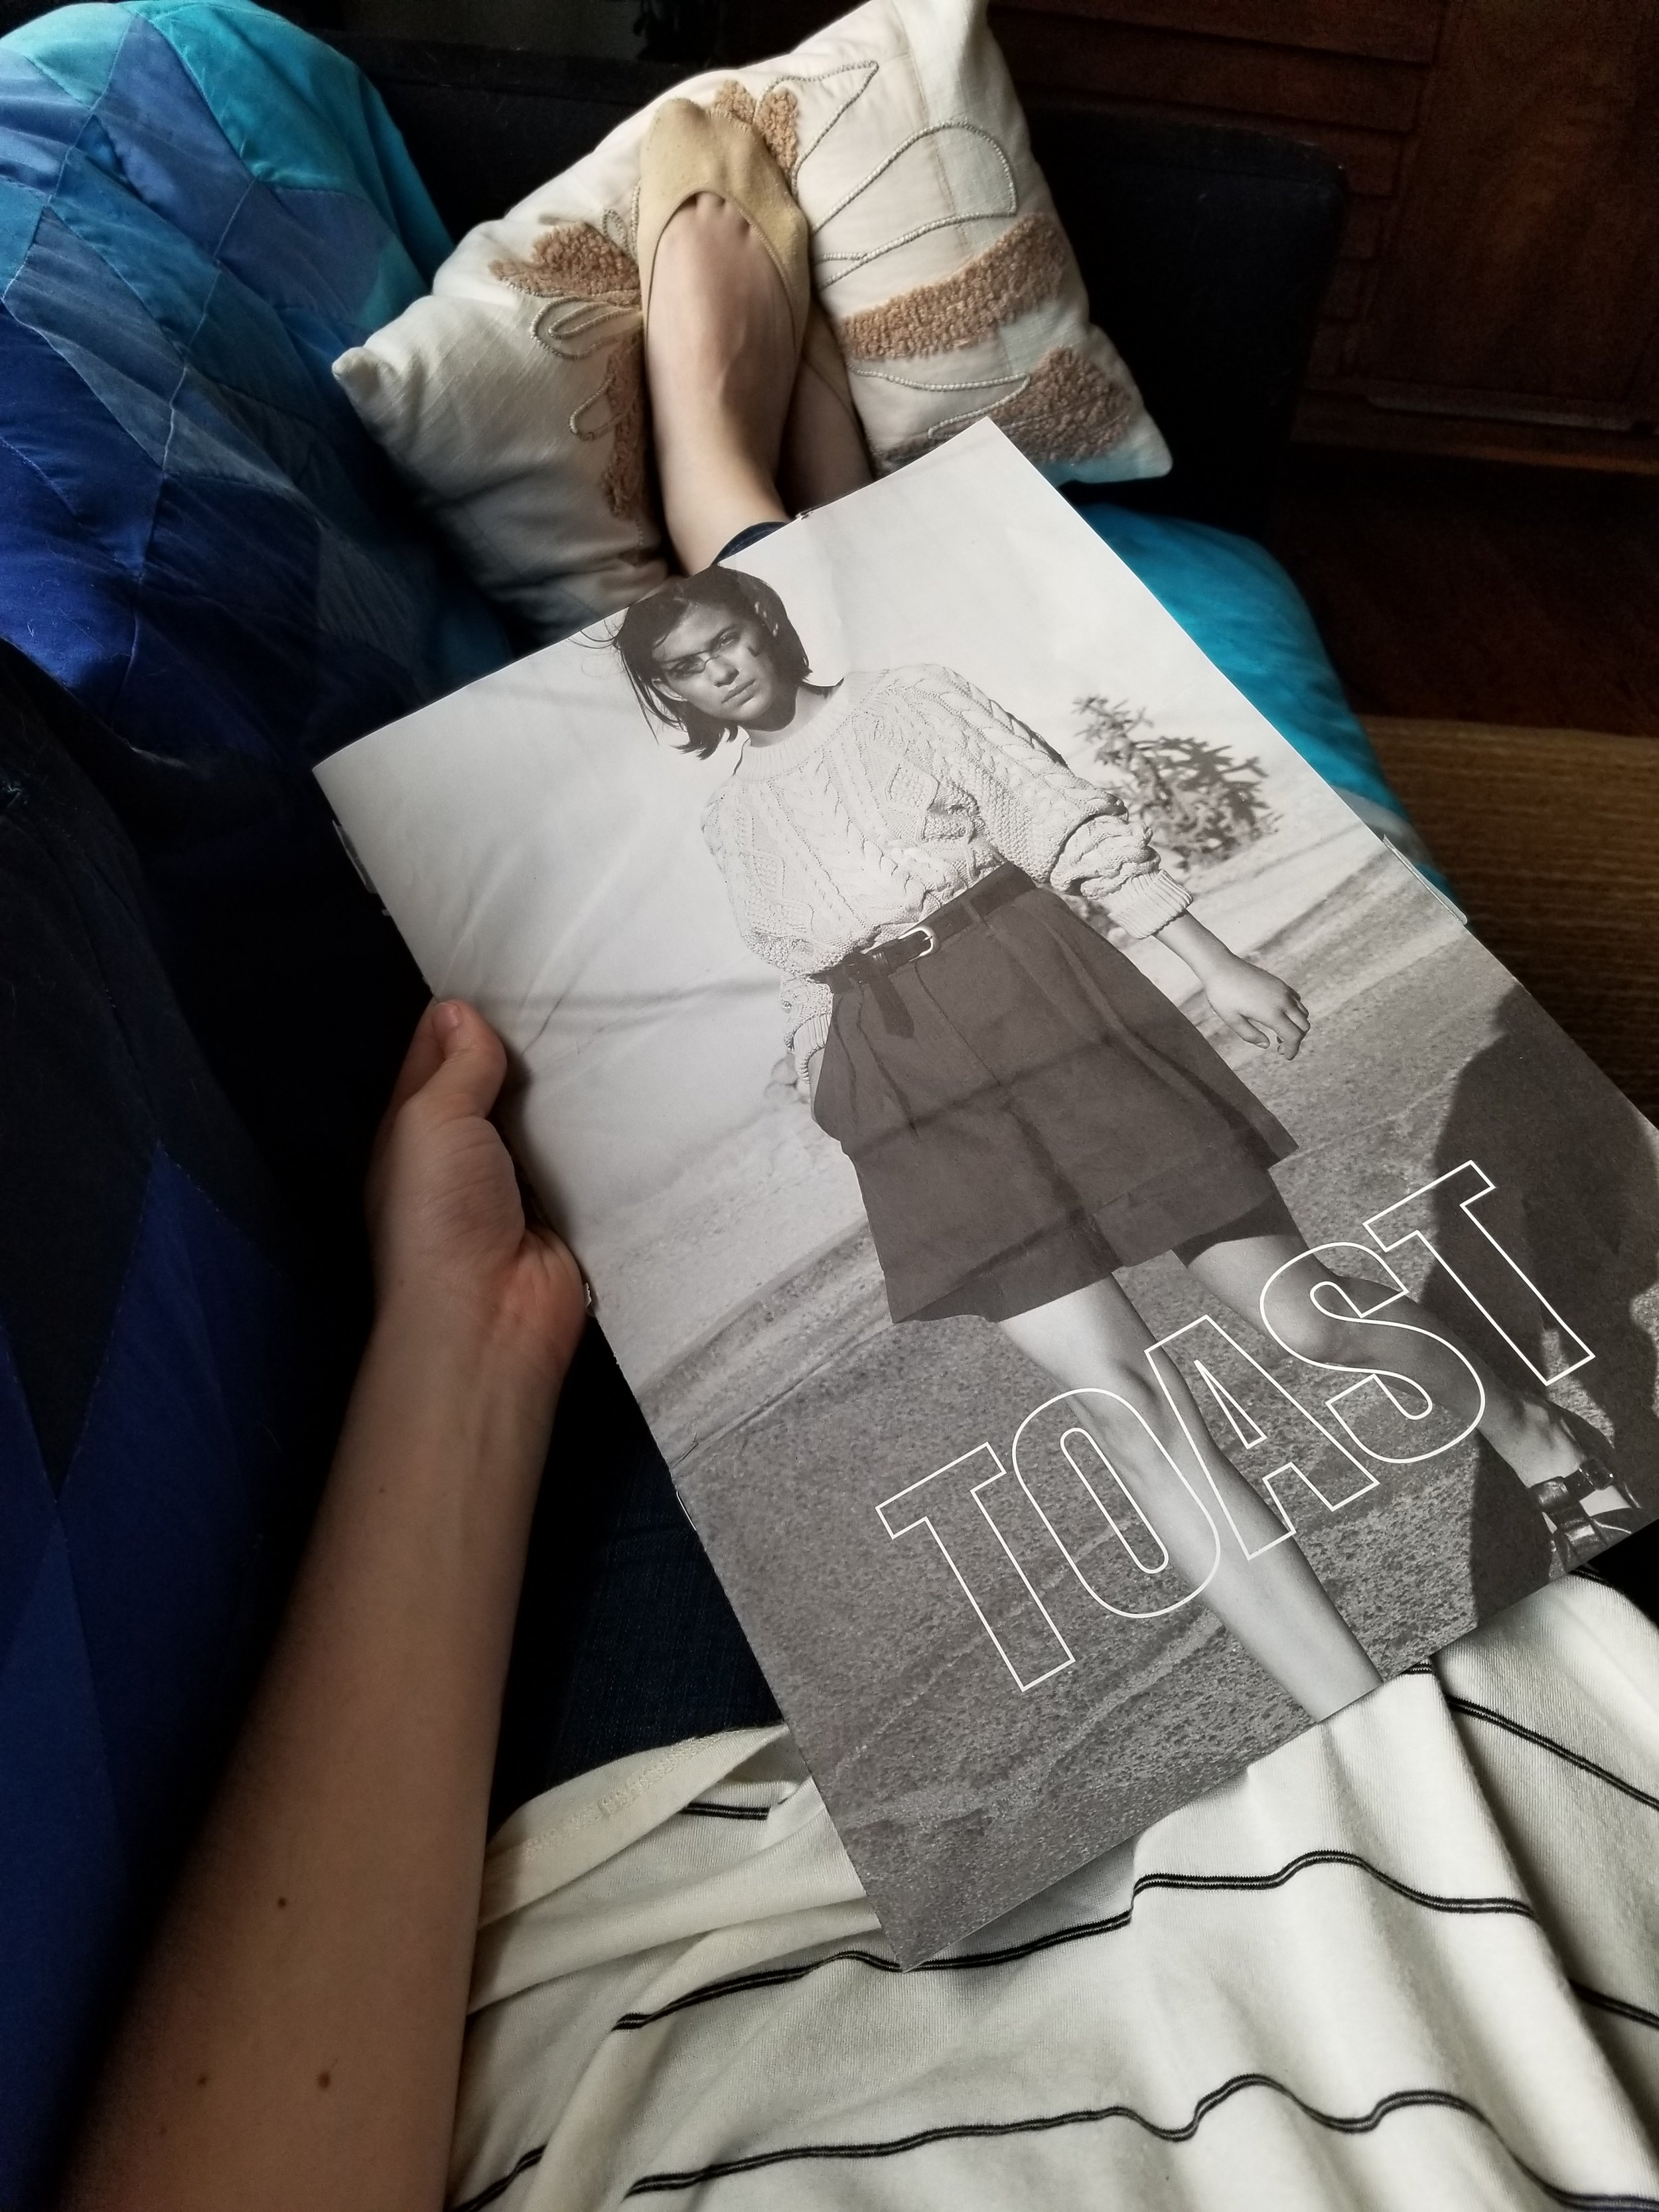 Here's what it looked like when the mailer, which we have established is beautifully printed, was unfolded. Those shorts!